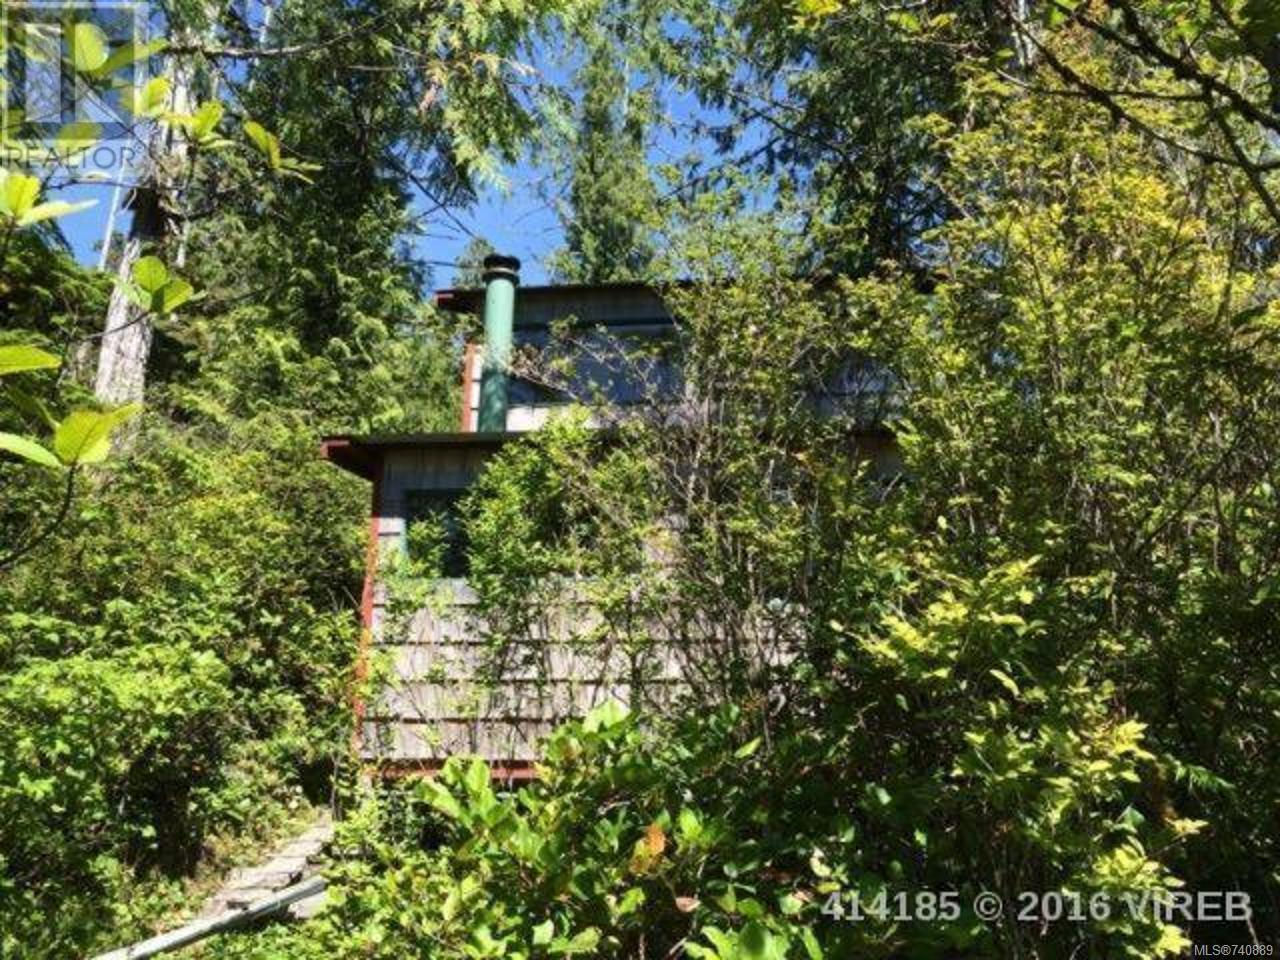 MLS® #740889 - Tofino House For sale Image #6